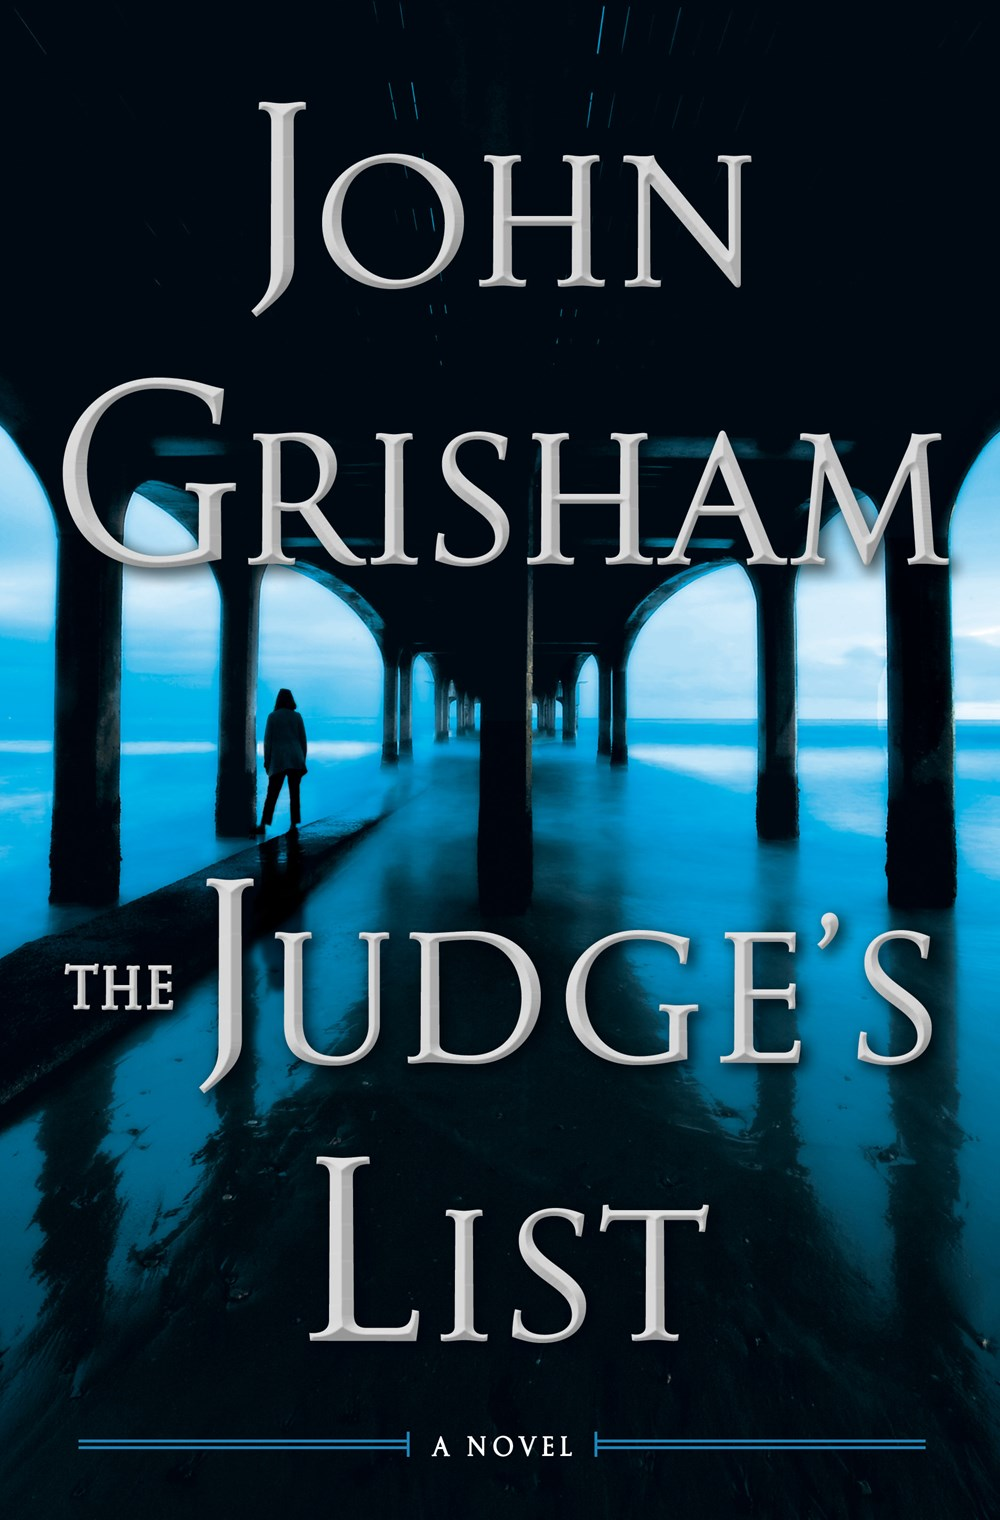 Judge's List cover image